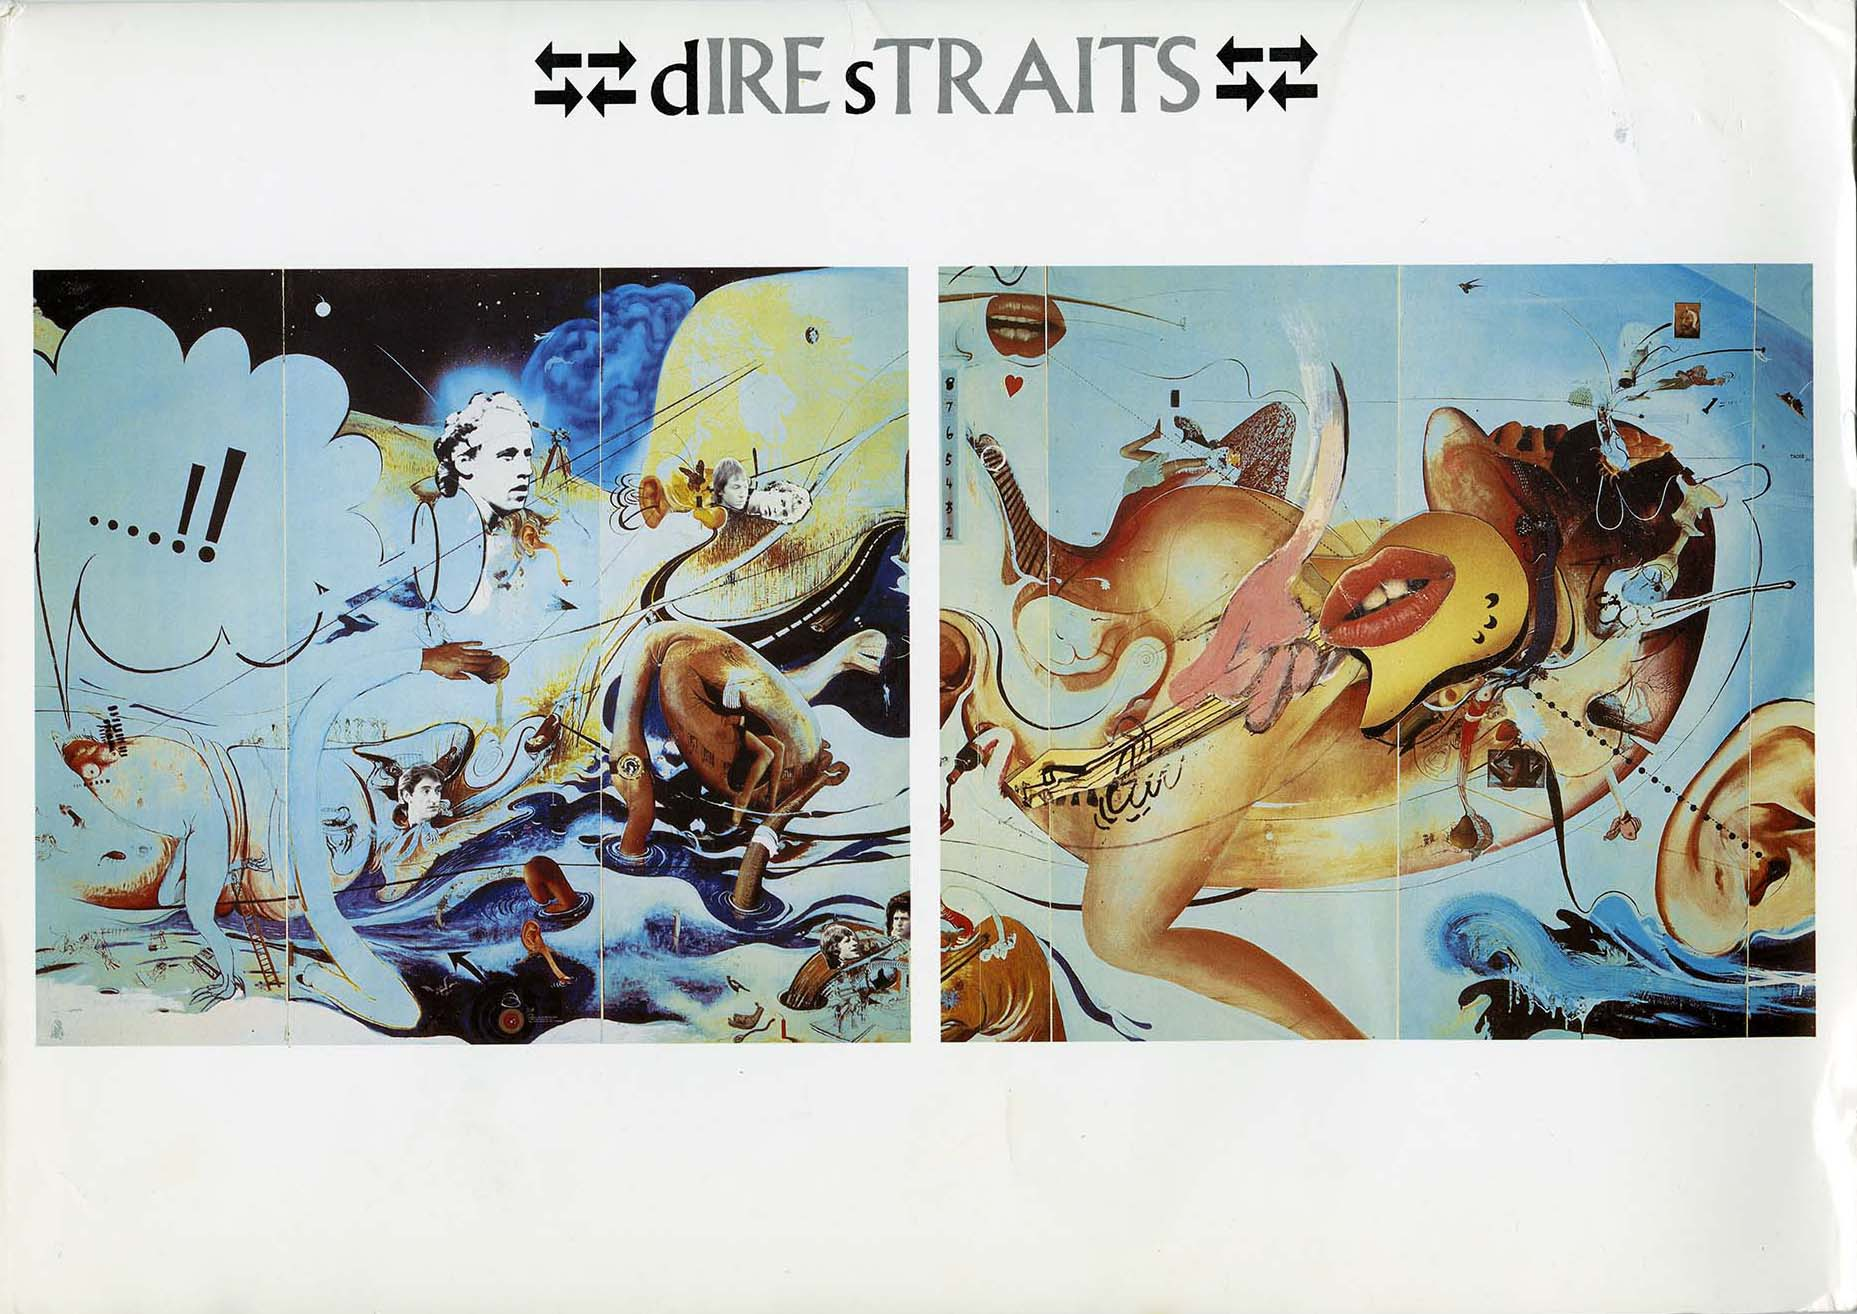 Dire Straits album art